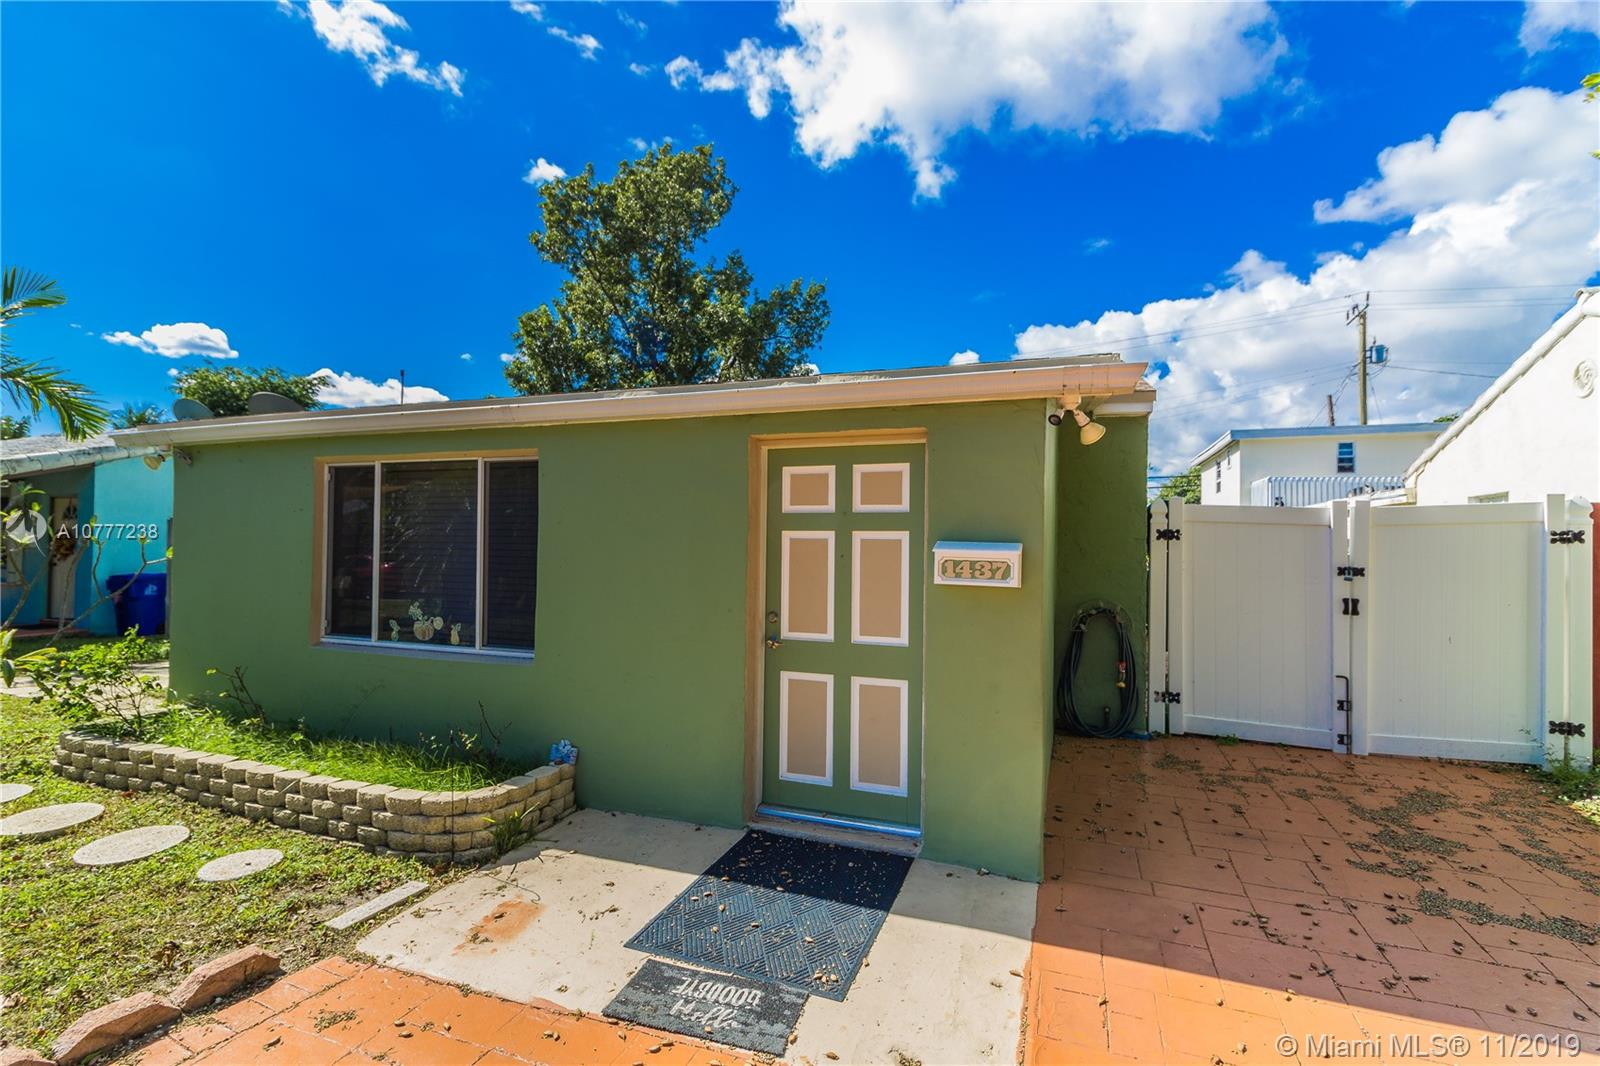 """Investor & DIY Potential. Retro 1950's 3 bedroom/1 bath in the Progresso area close to downtown Ft. Lauderdale, the beach as well all the amenities the city has to offer. Large deep backyard offers the ability to add on to the house along with a possible pool. The house has """"great bones"""" structure when houses were built to last. Needs extensive interior work. Priced to Sell As-Is. Discover the benefits of investing in this area that provides great ROI.Showings by Appointment Only with 24 hours notice."""